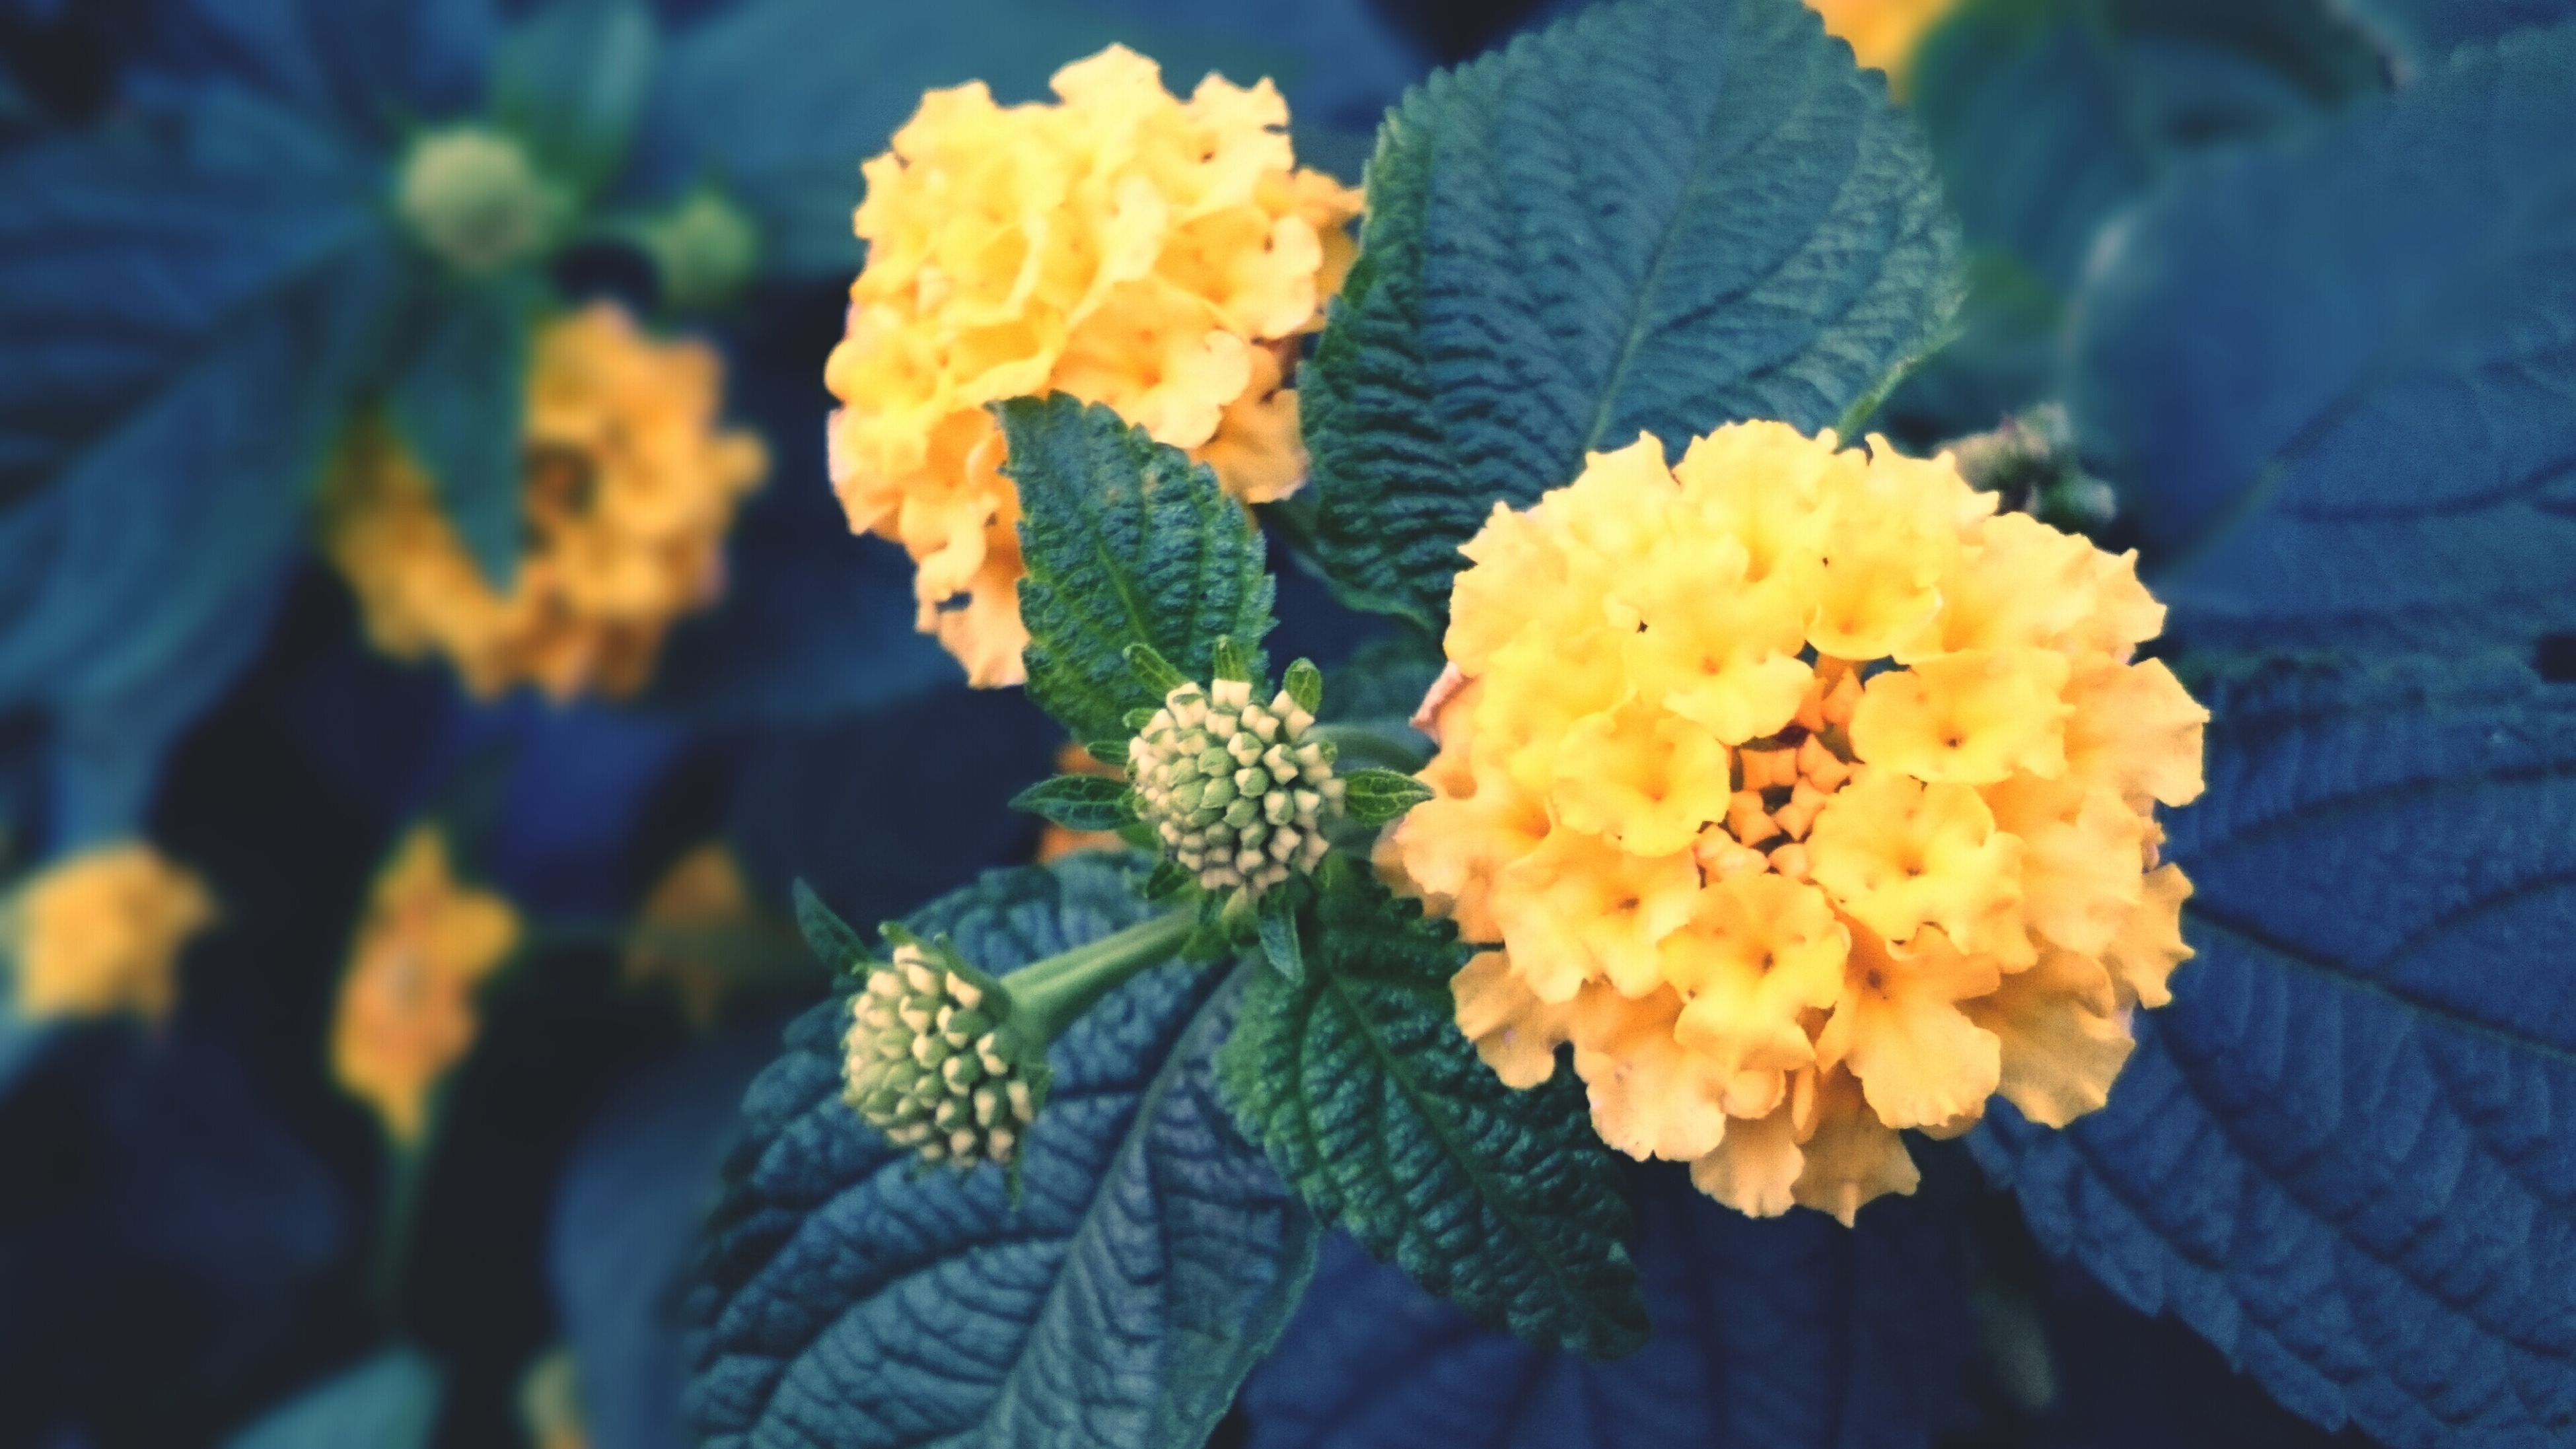 flower, petal, yellow, fragility, freshness, flower head, beauty in nature, growth, close-up, blooming, nature, focus on foreground, plant, in bloom, leaf, outdoors, blossom, day, pollen, high angle view